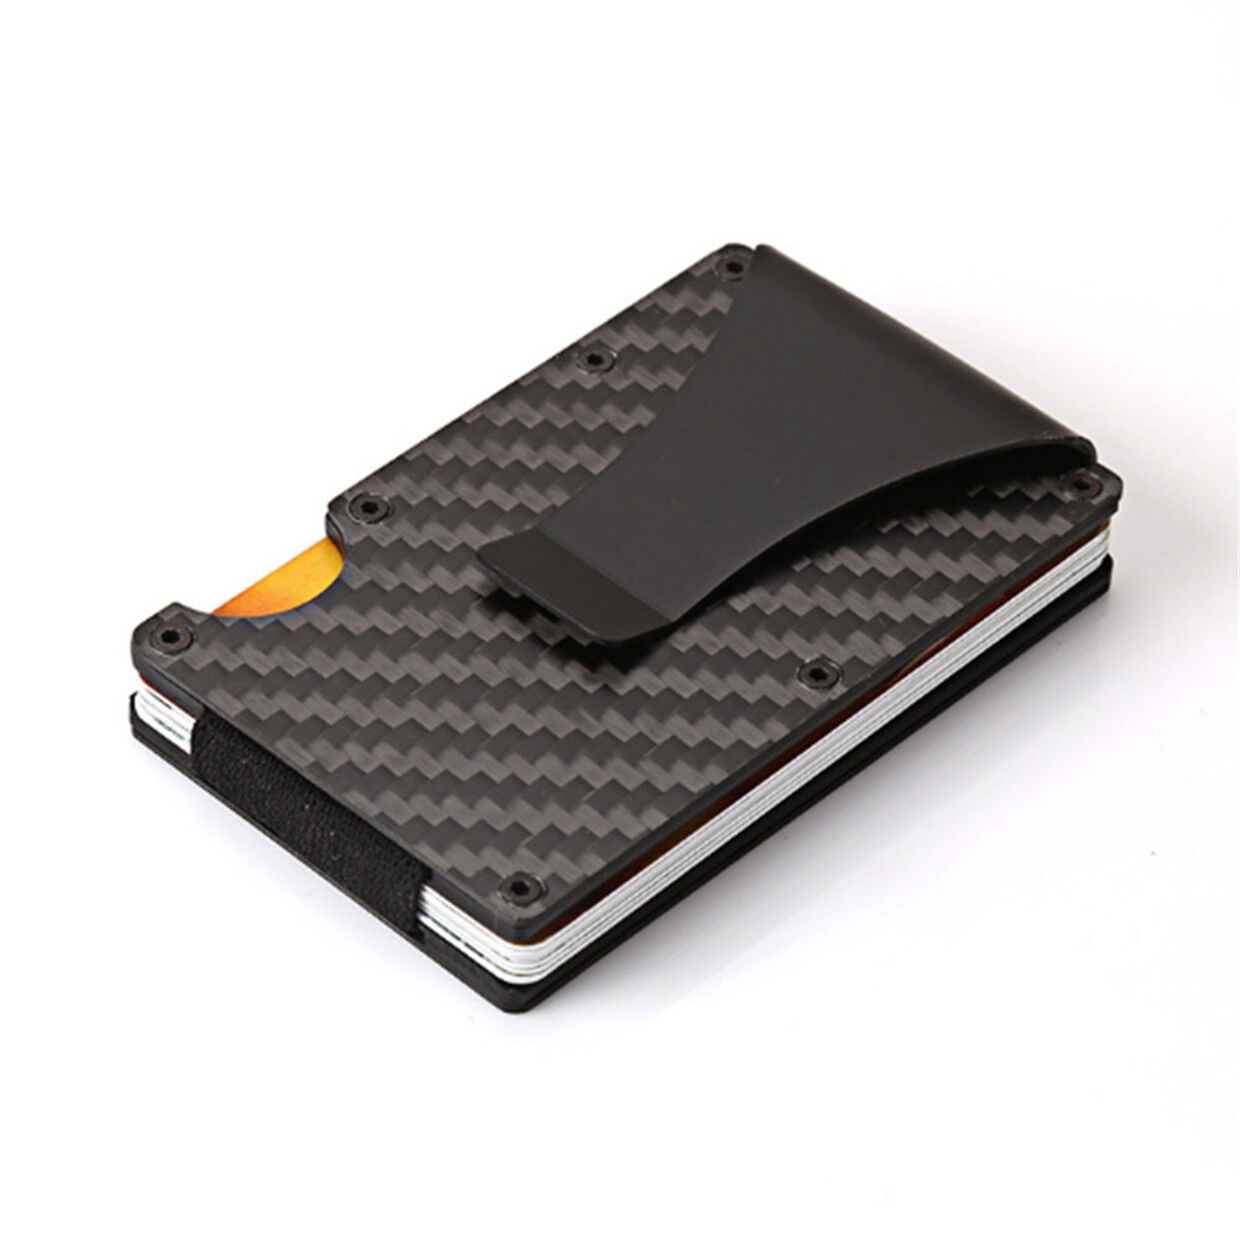 058b502c654f Details about Sale Wallet Carbon Fiber Money Clip Minimalist Pocket Slim  RFID 2019 AK